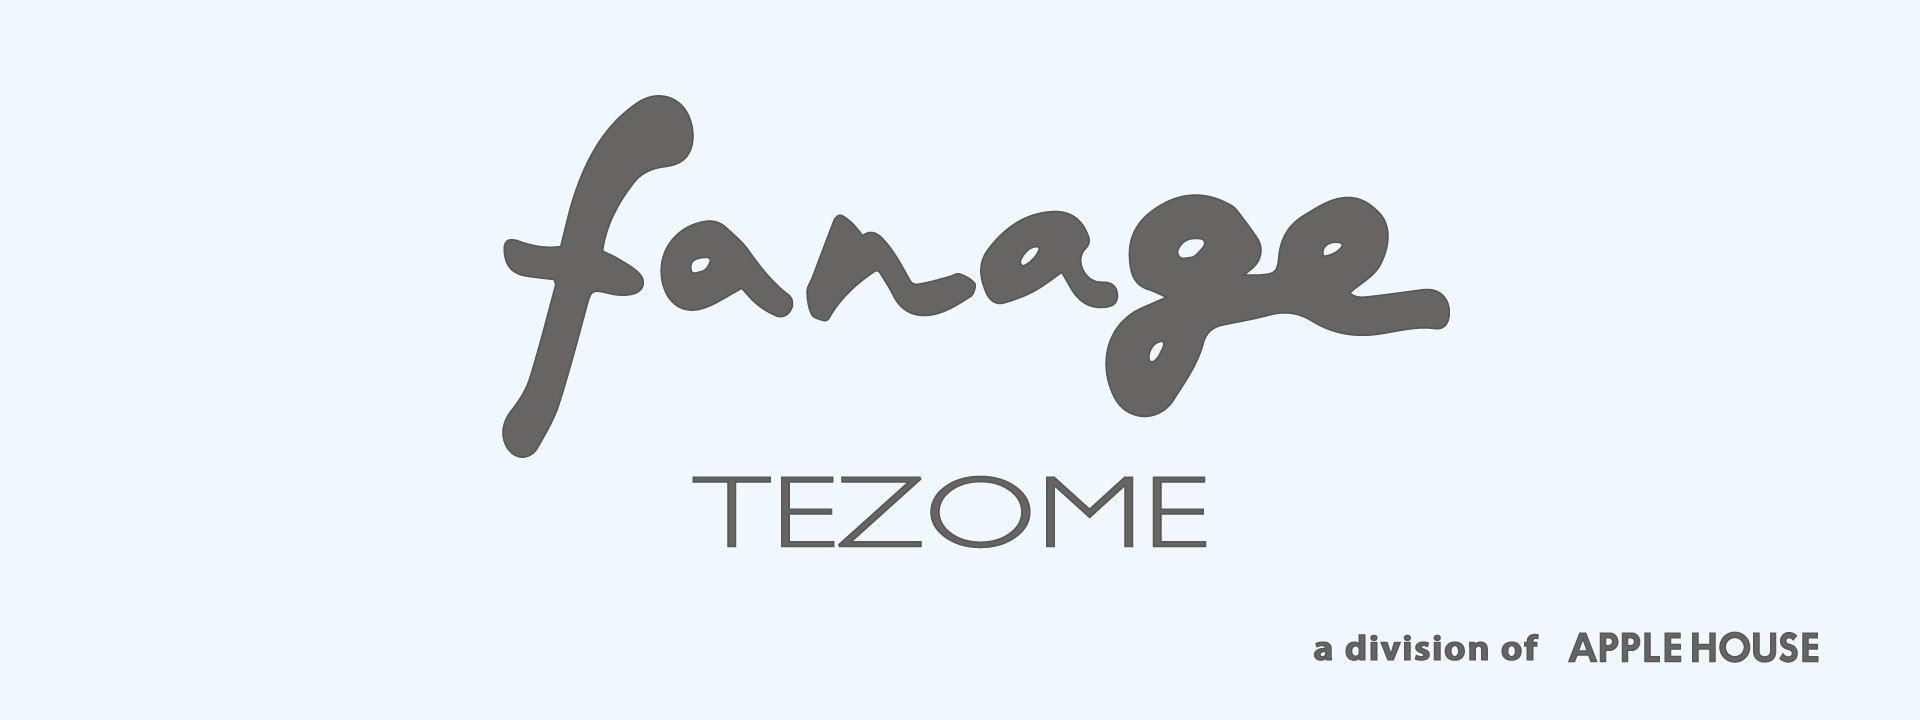 fanage  tezome